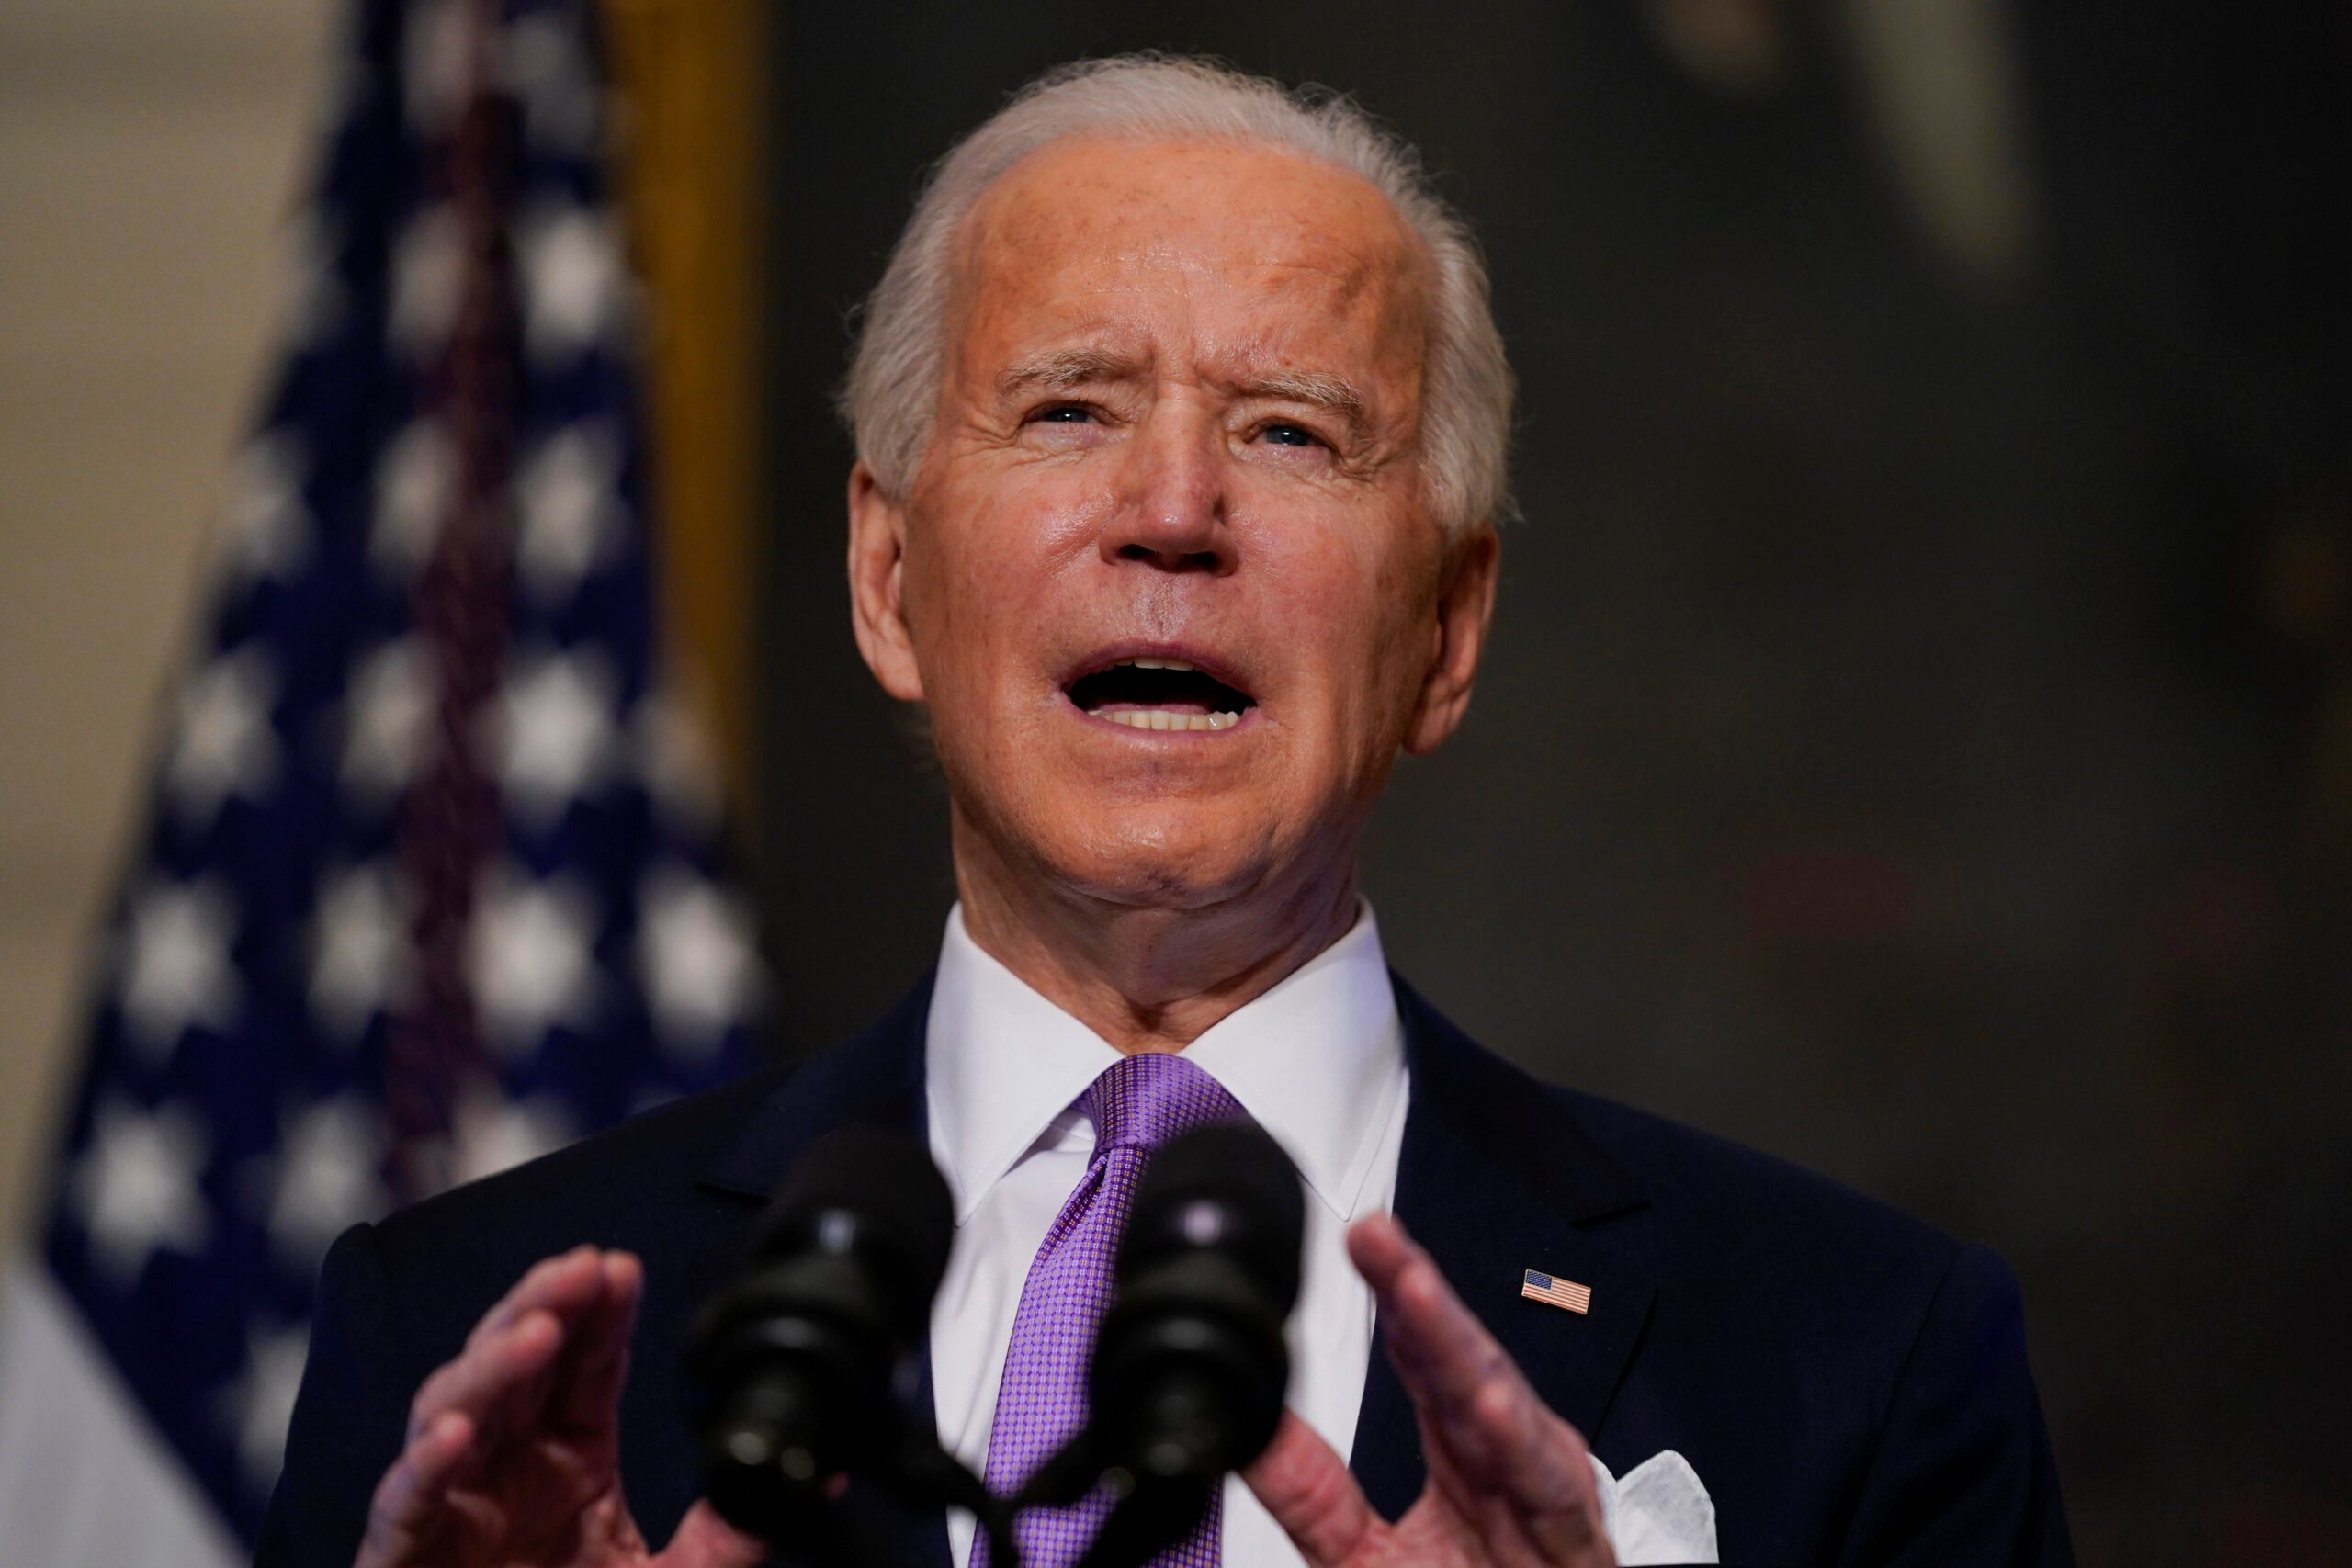 Biden to Reopen 'Obamacare' Markets for COVID-19 Relief - snopes